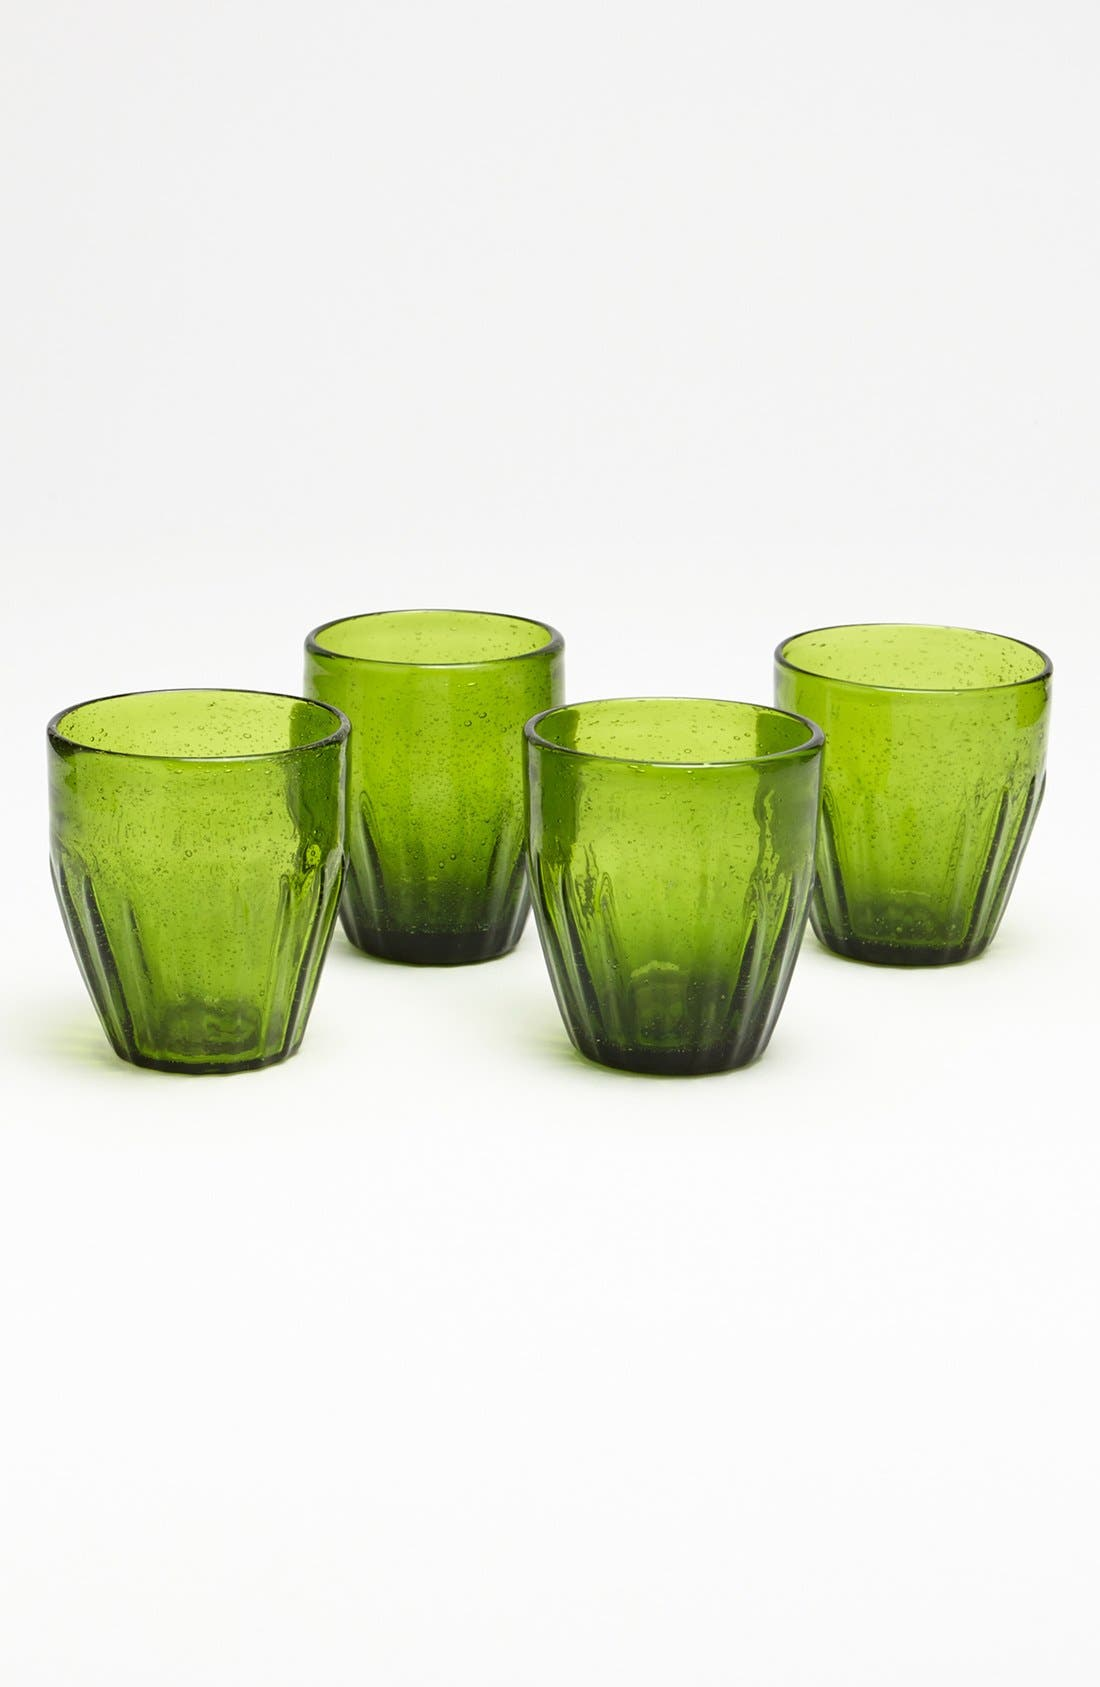 Main Image - Rustic Green Glass Tumblers (Set of 4)